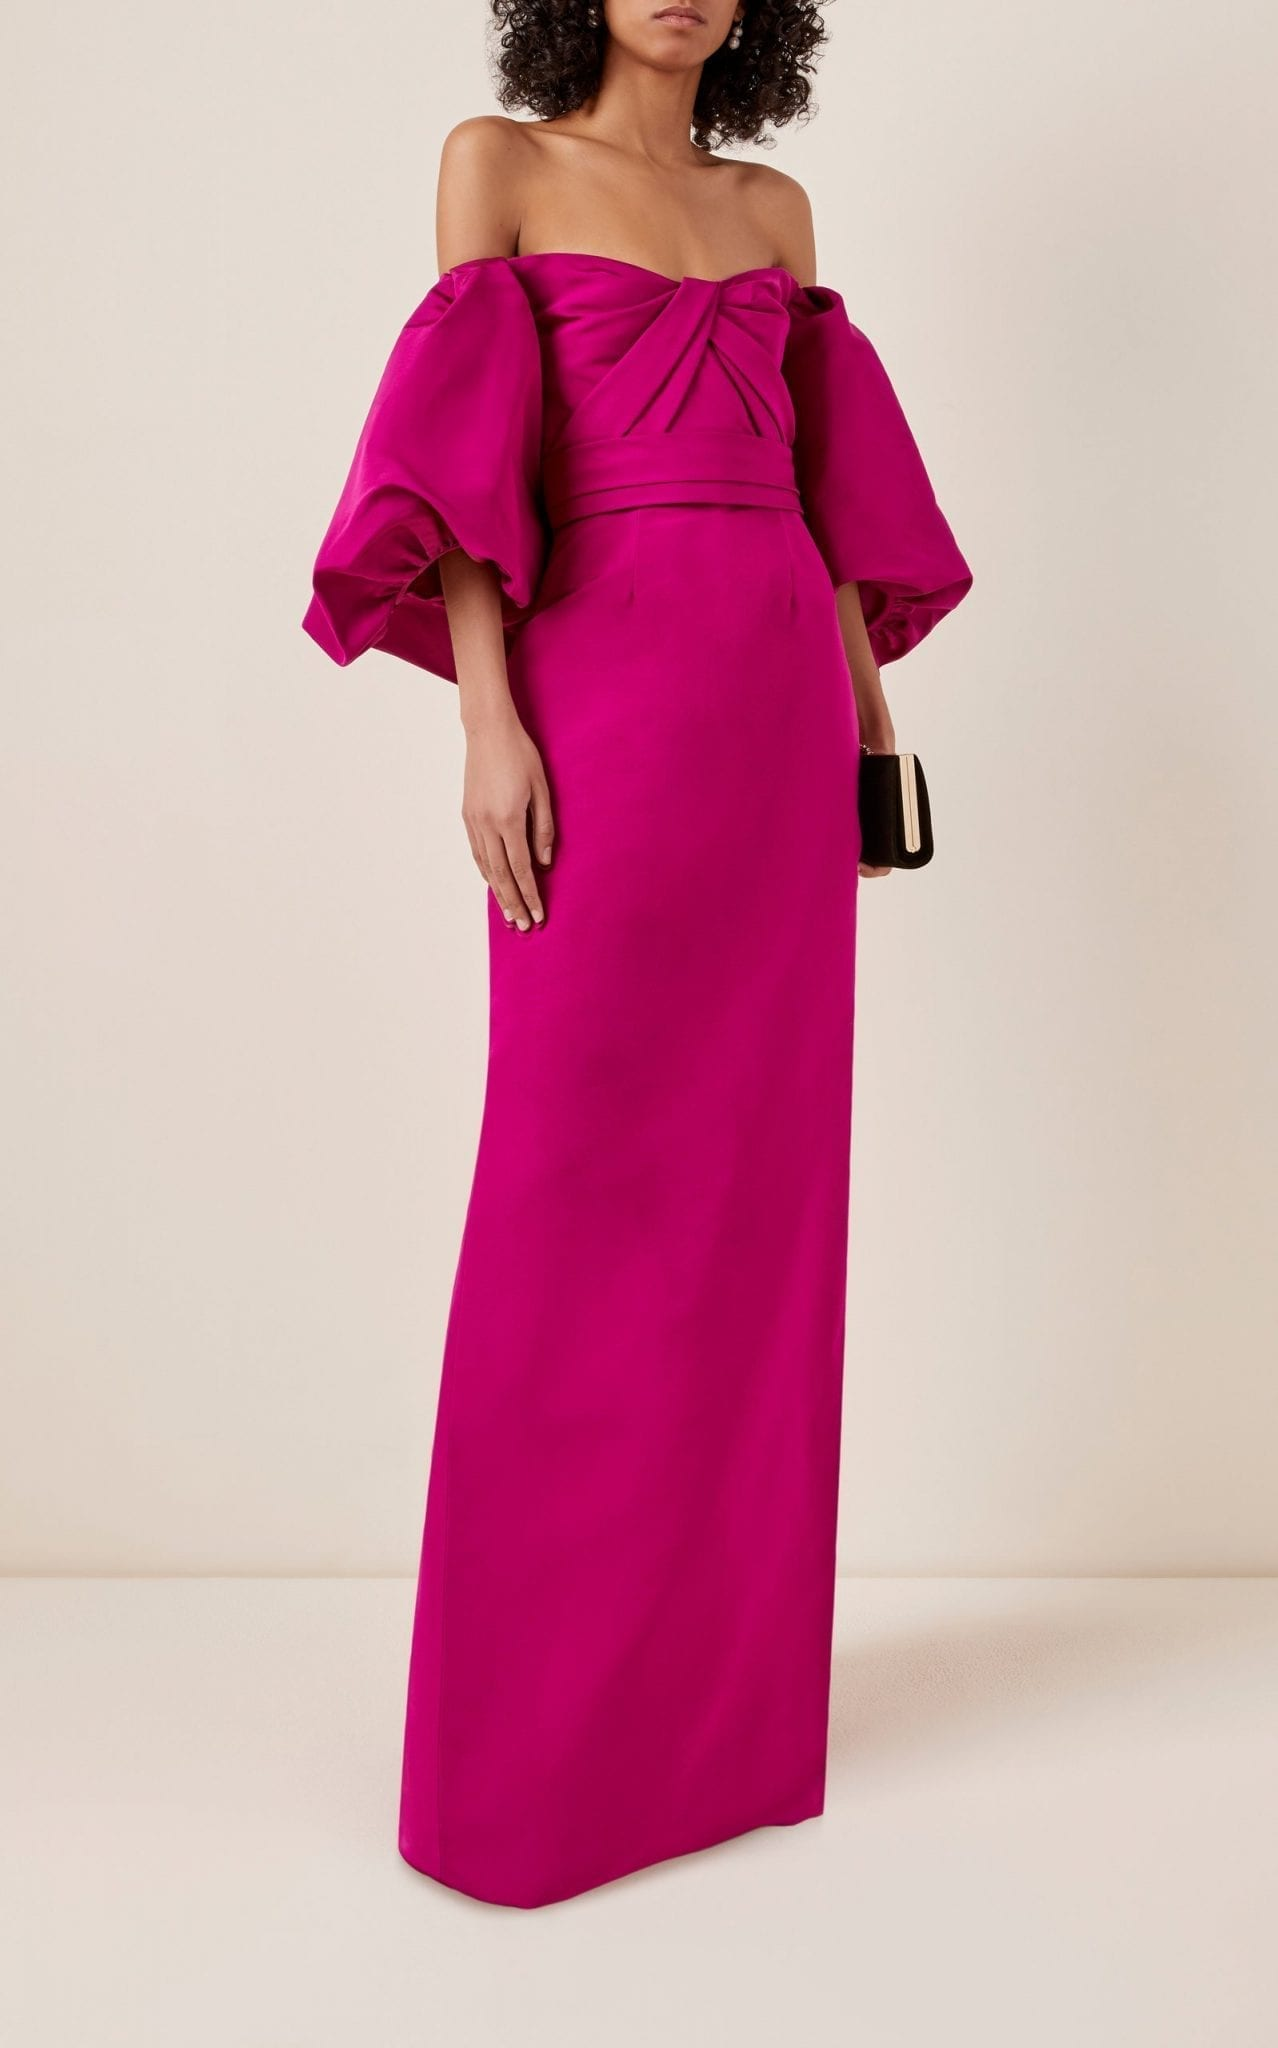 MONIQUE LHUILLIER Off-The-Shoulder Silk Taffeta Maxi Dress